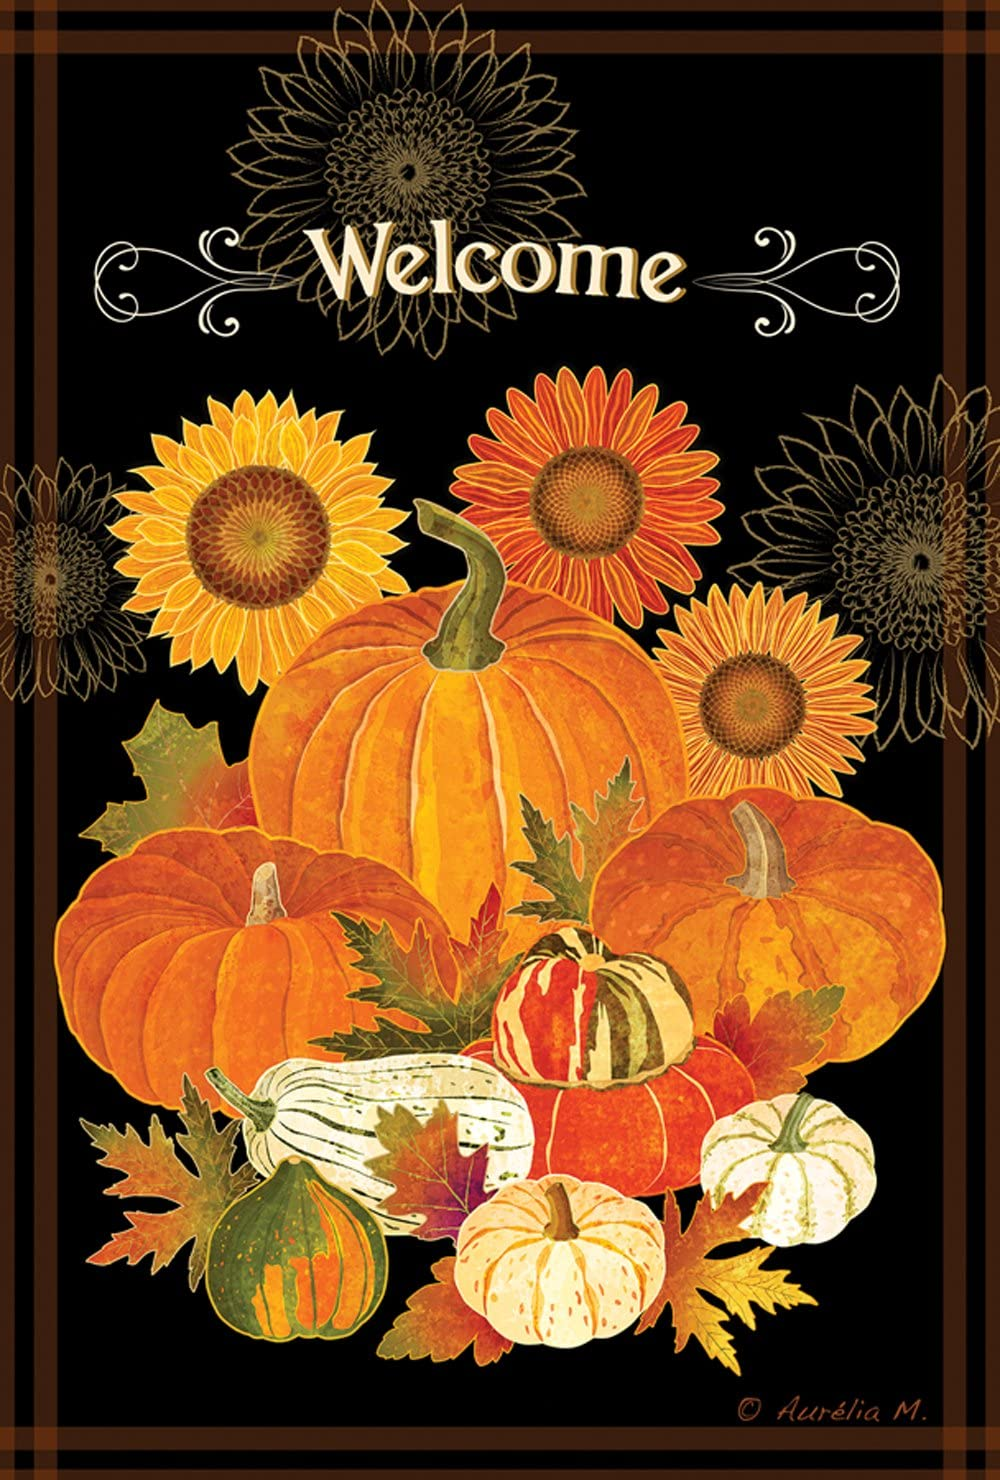 Toland Home Garden Pumpkin Bounty 28 x 40 Inch Decorative Fall Pumpkin Harvest House Flag